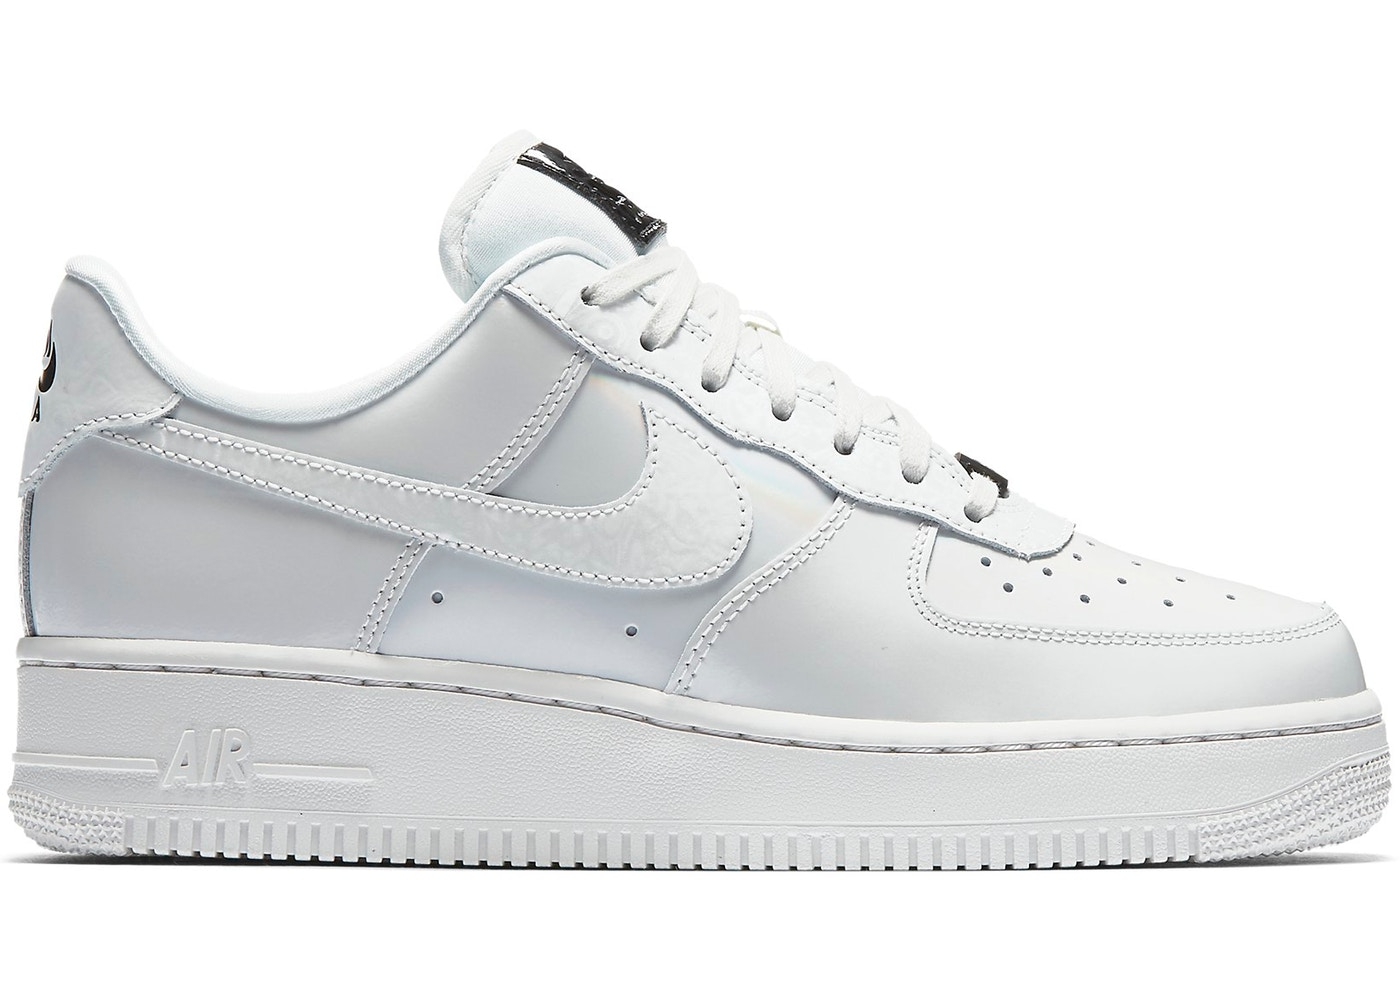 7d594e7097e Air Force 1 Low Lux All-Star 2018 White (W) - 898889-100